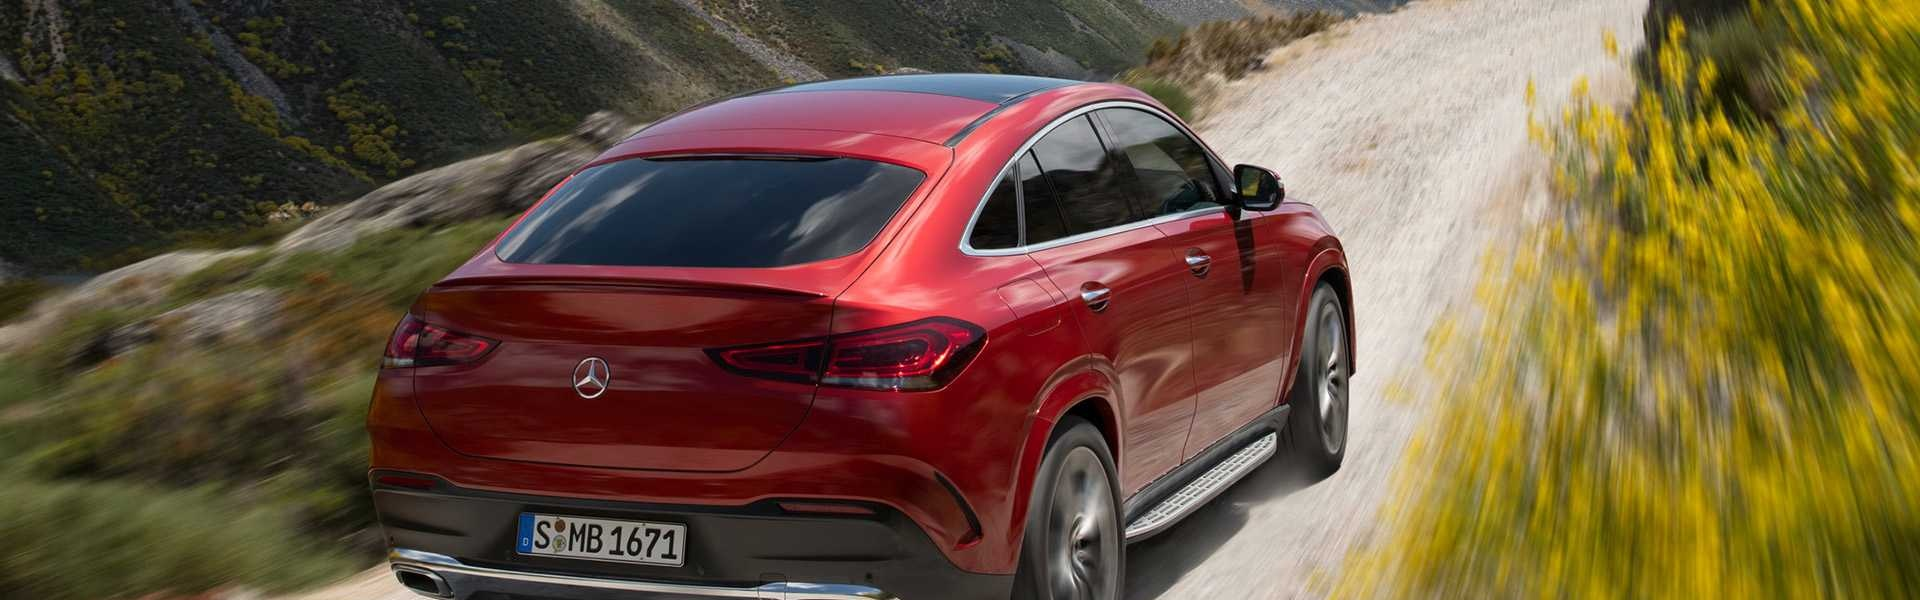 mercedes-gle-coupe-2019 (2).jpg